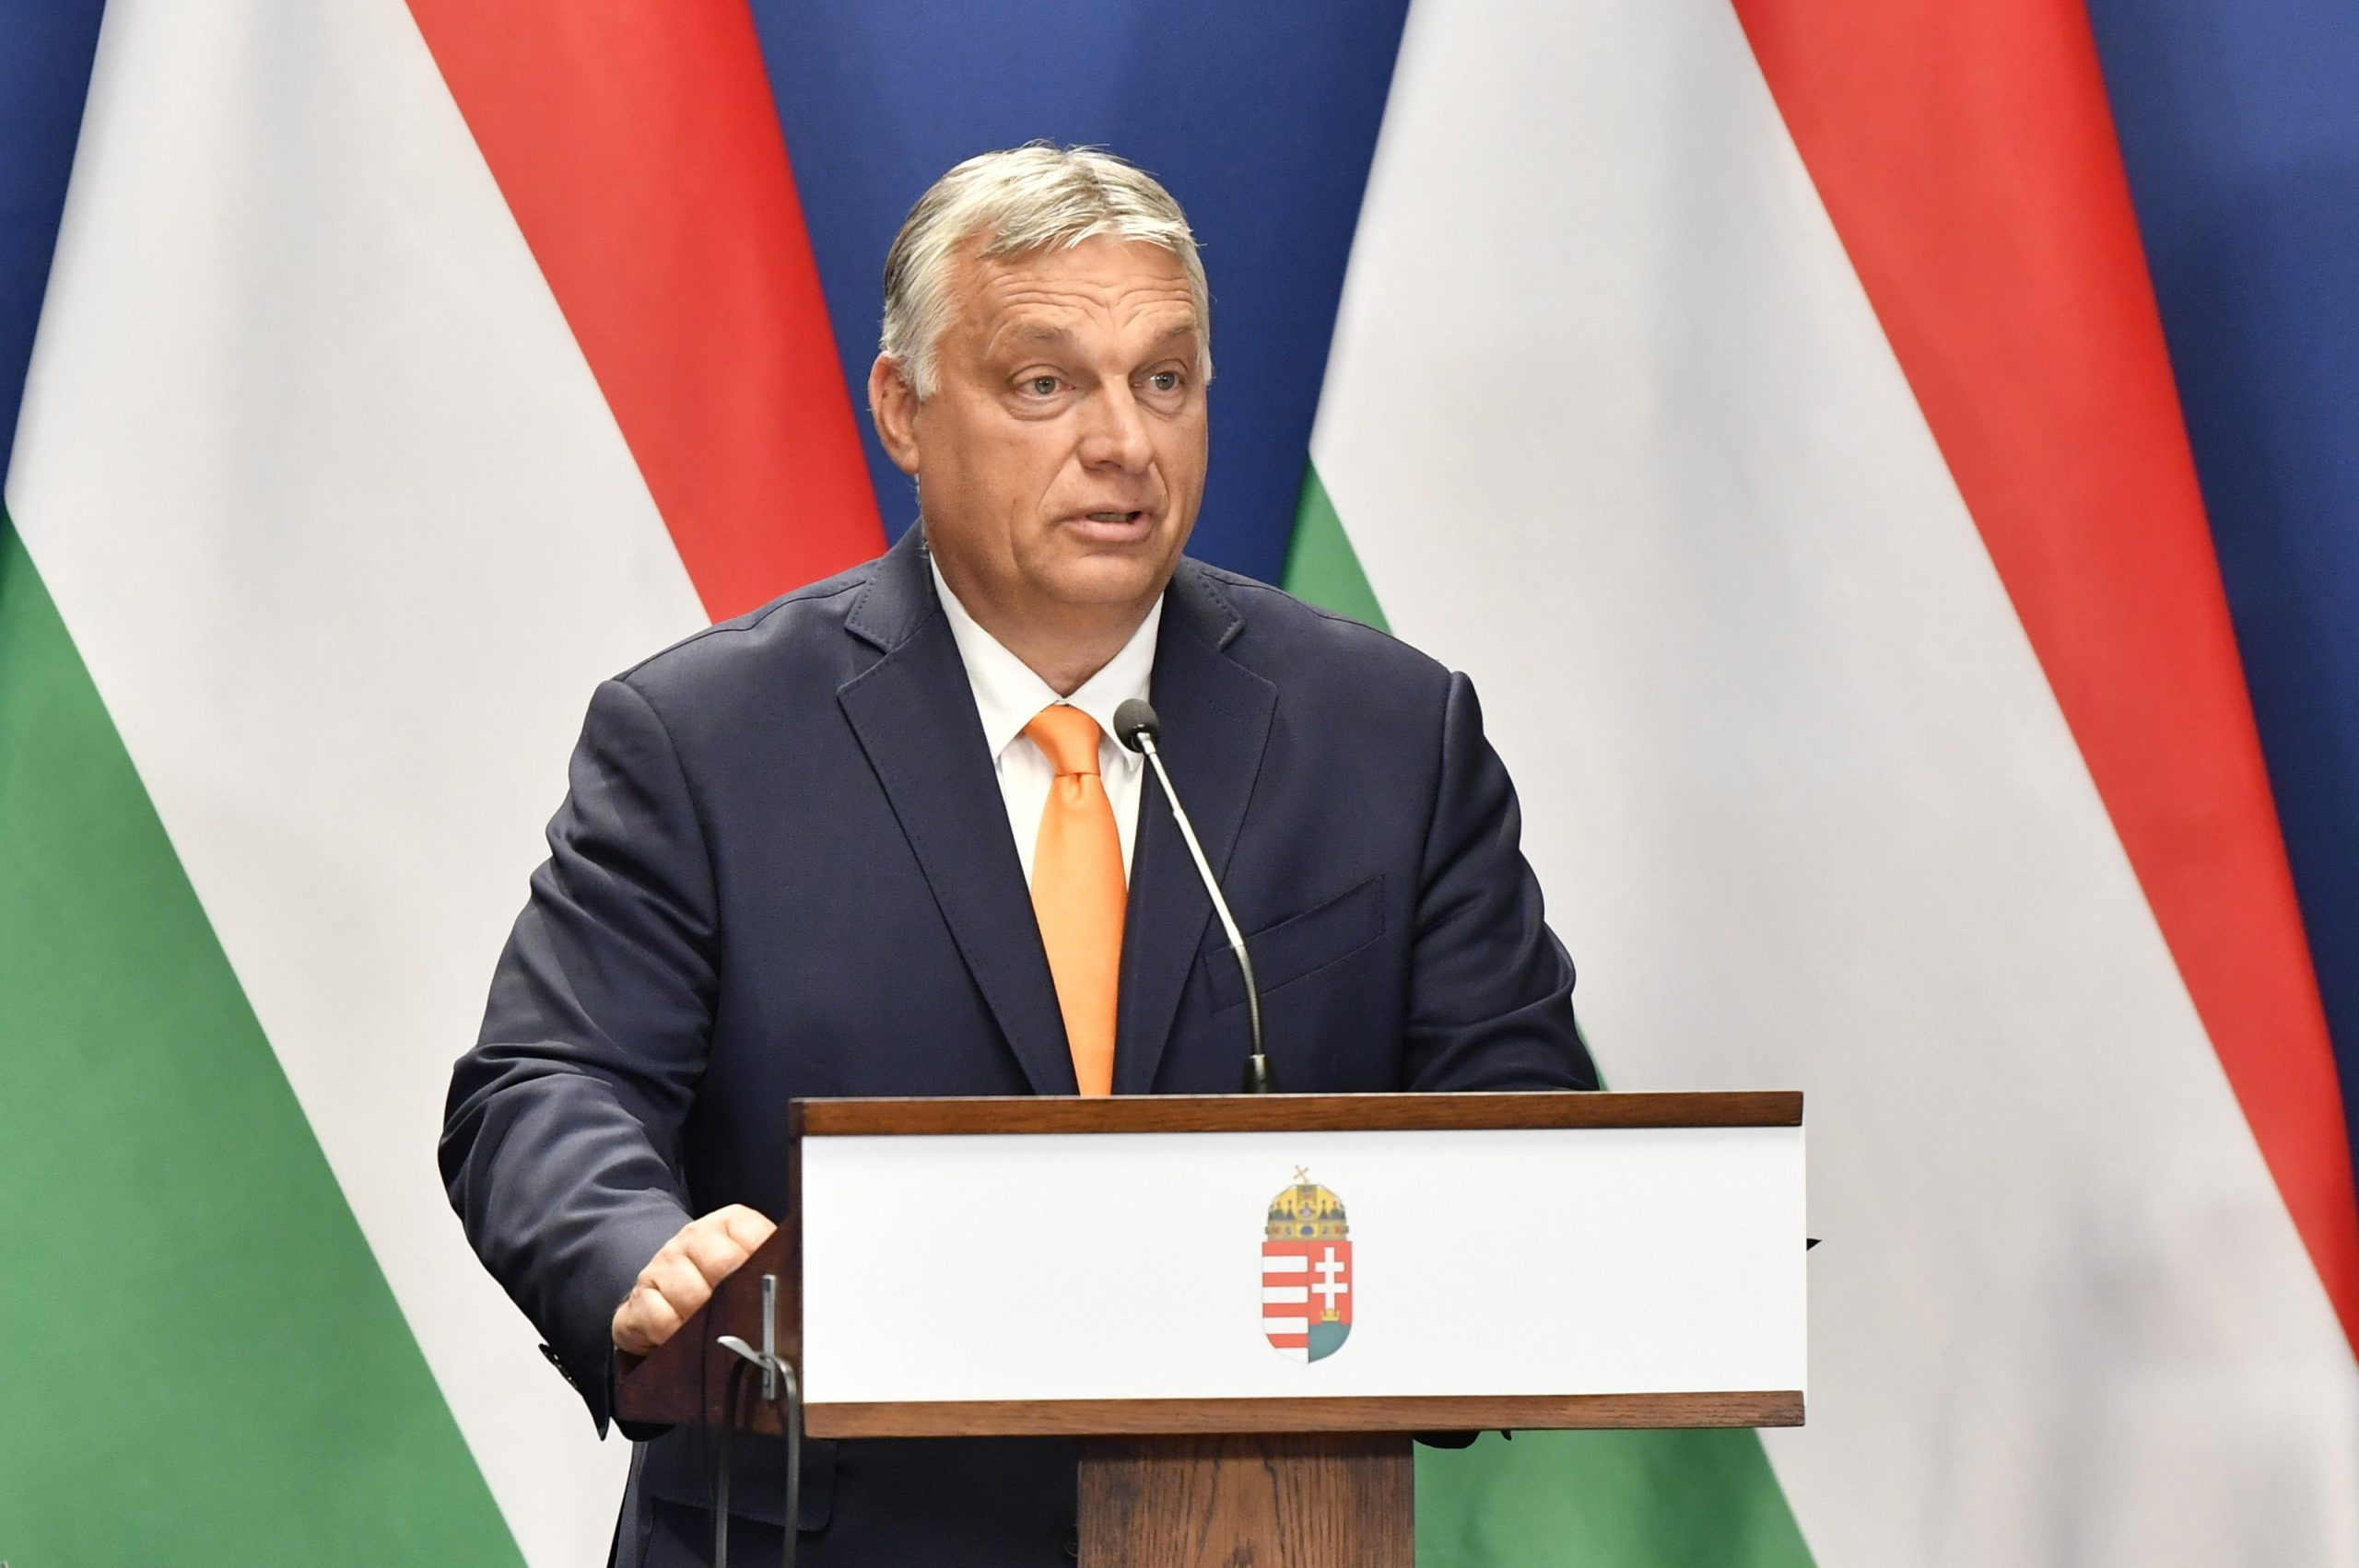 PM Orbán: EU Needs to Rethink Policy on Energy Prices